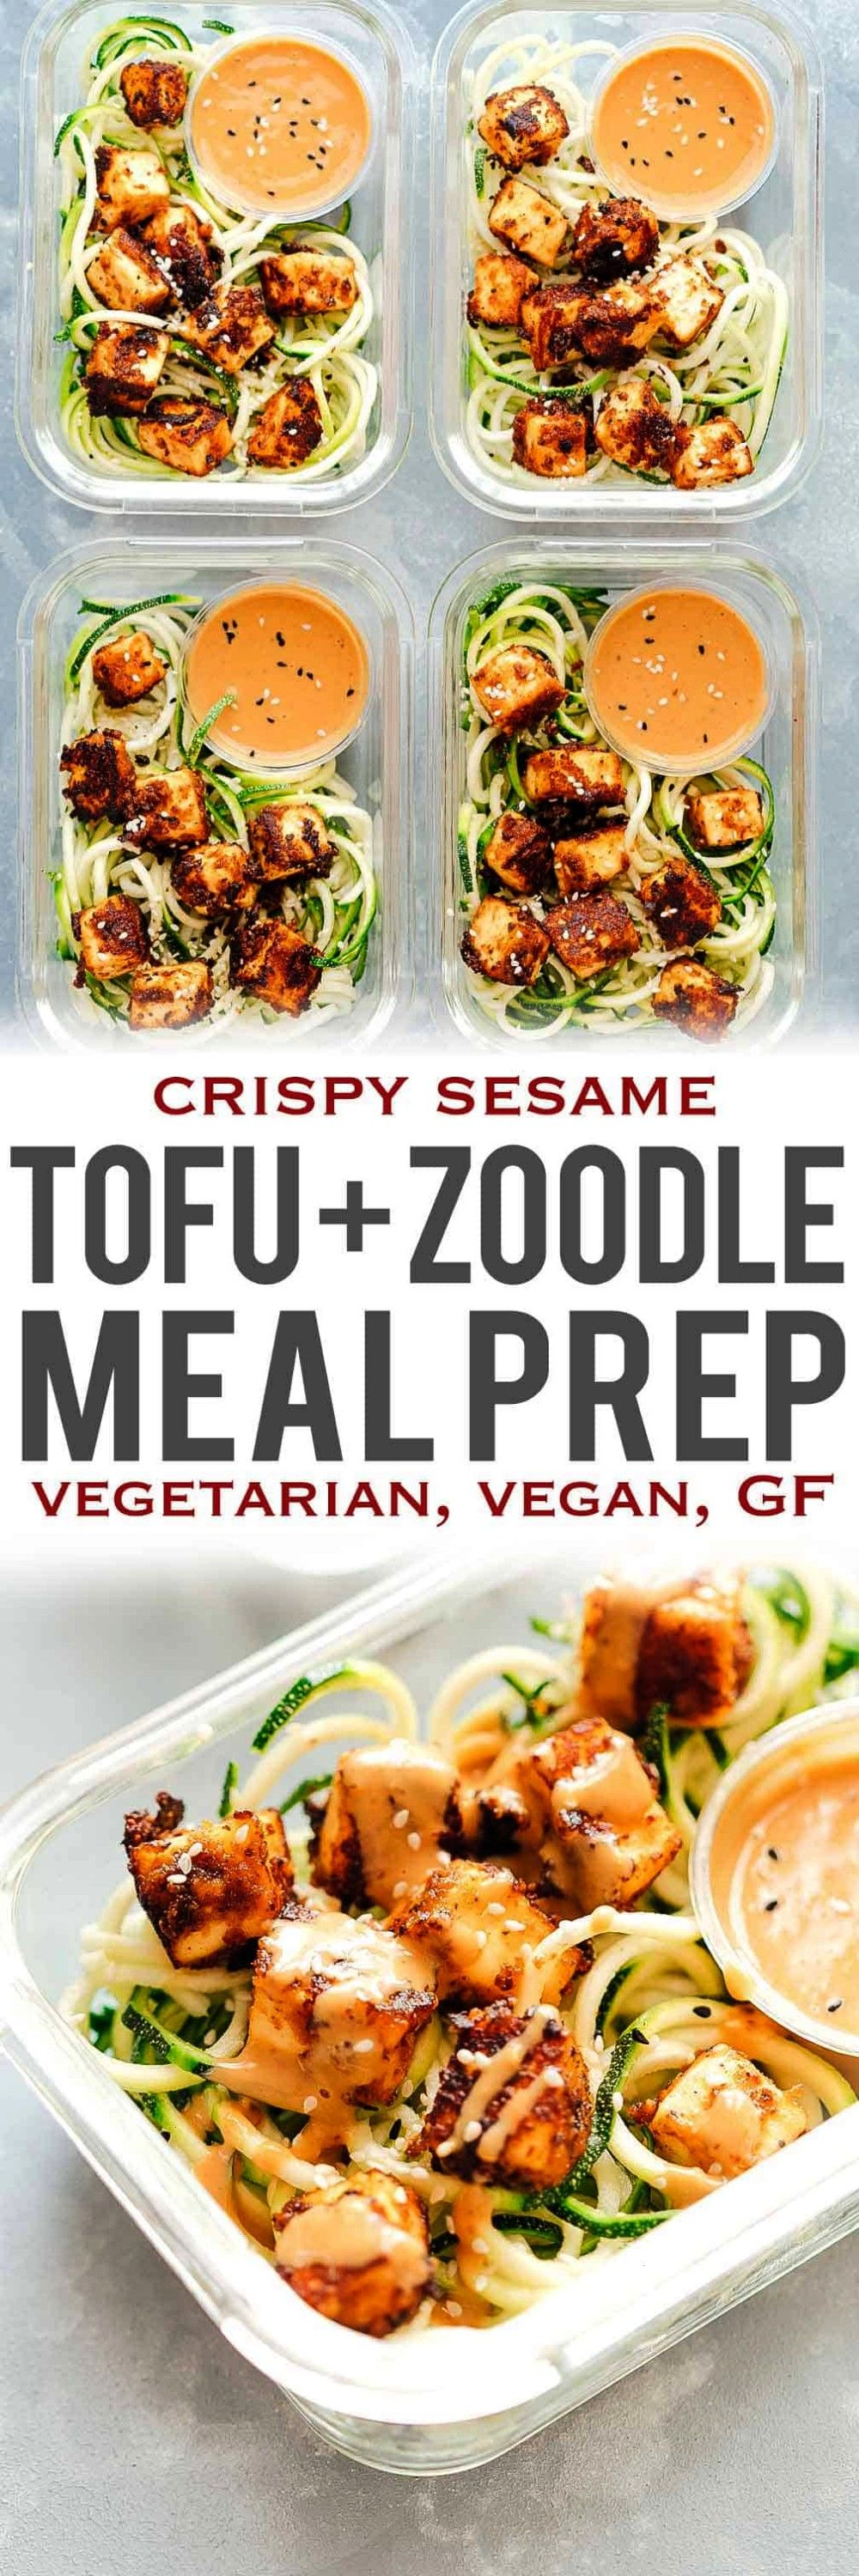 sesame tofu with zucchini noodles is the perfect healthy, vegetarian meal prep lunch recipe that is